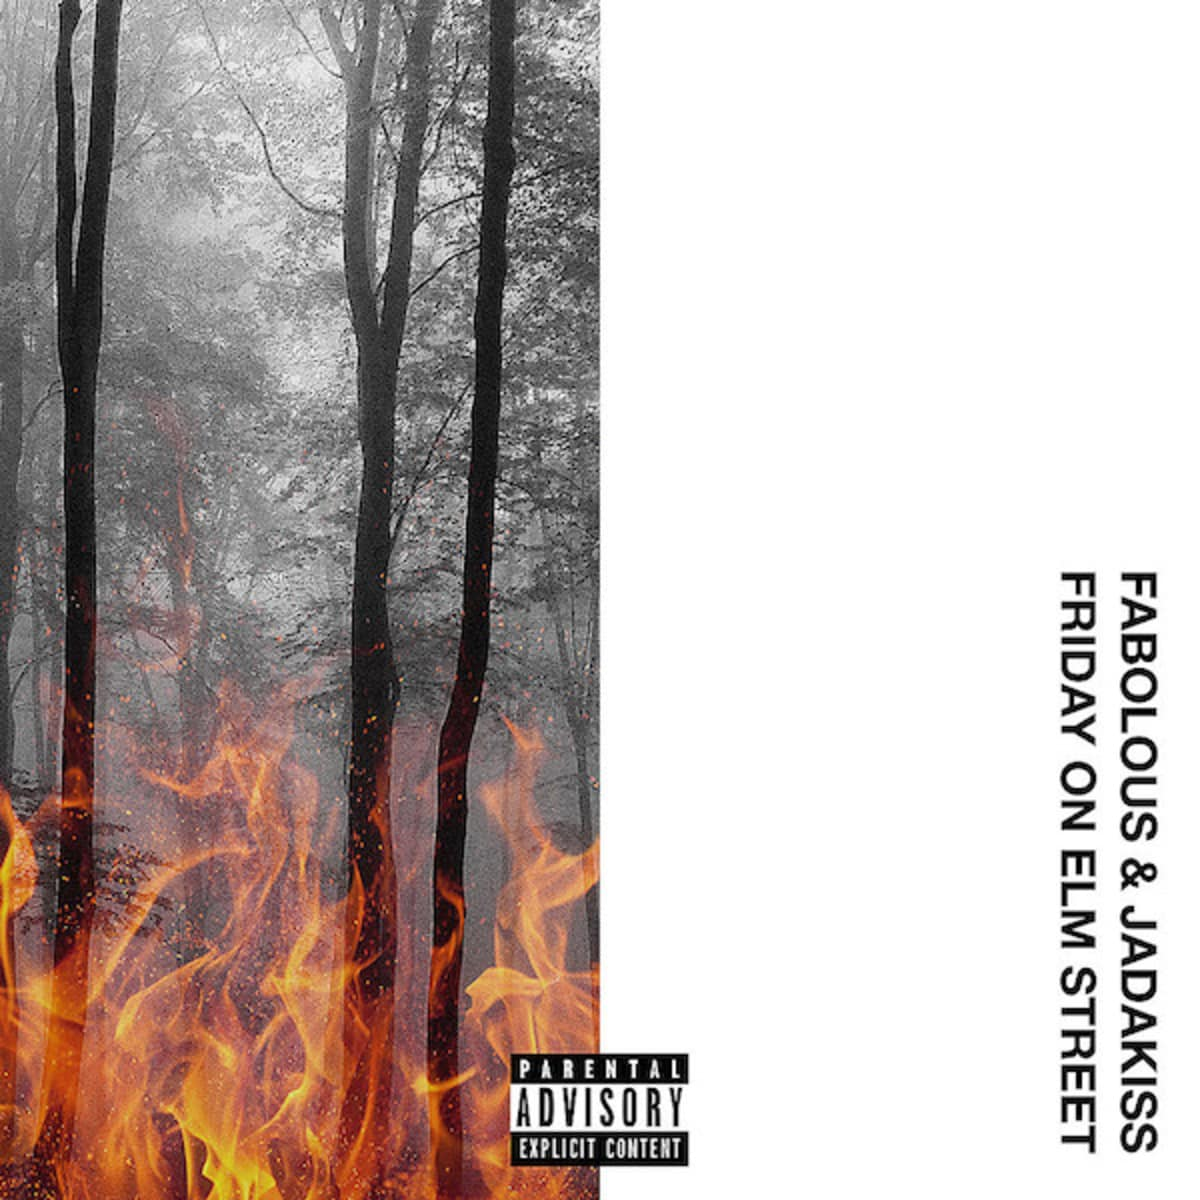 Download Fabolous & Jadakiss - Friday On Elm Street Full Album MP3 Download